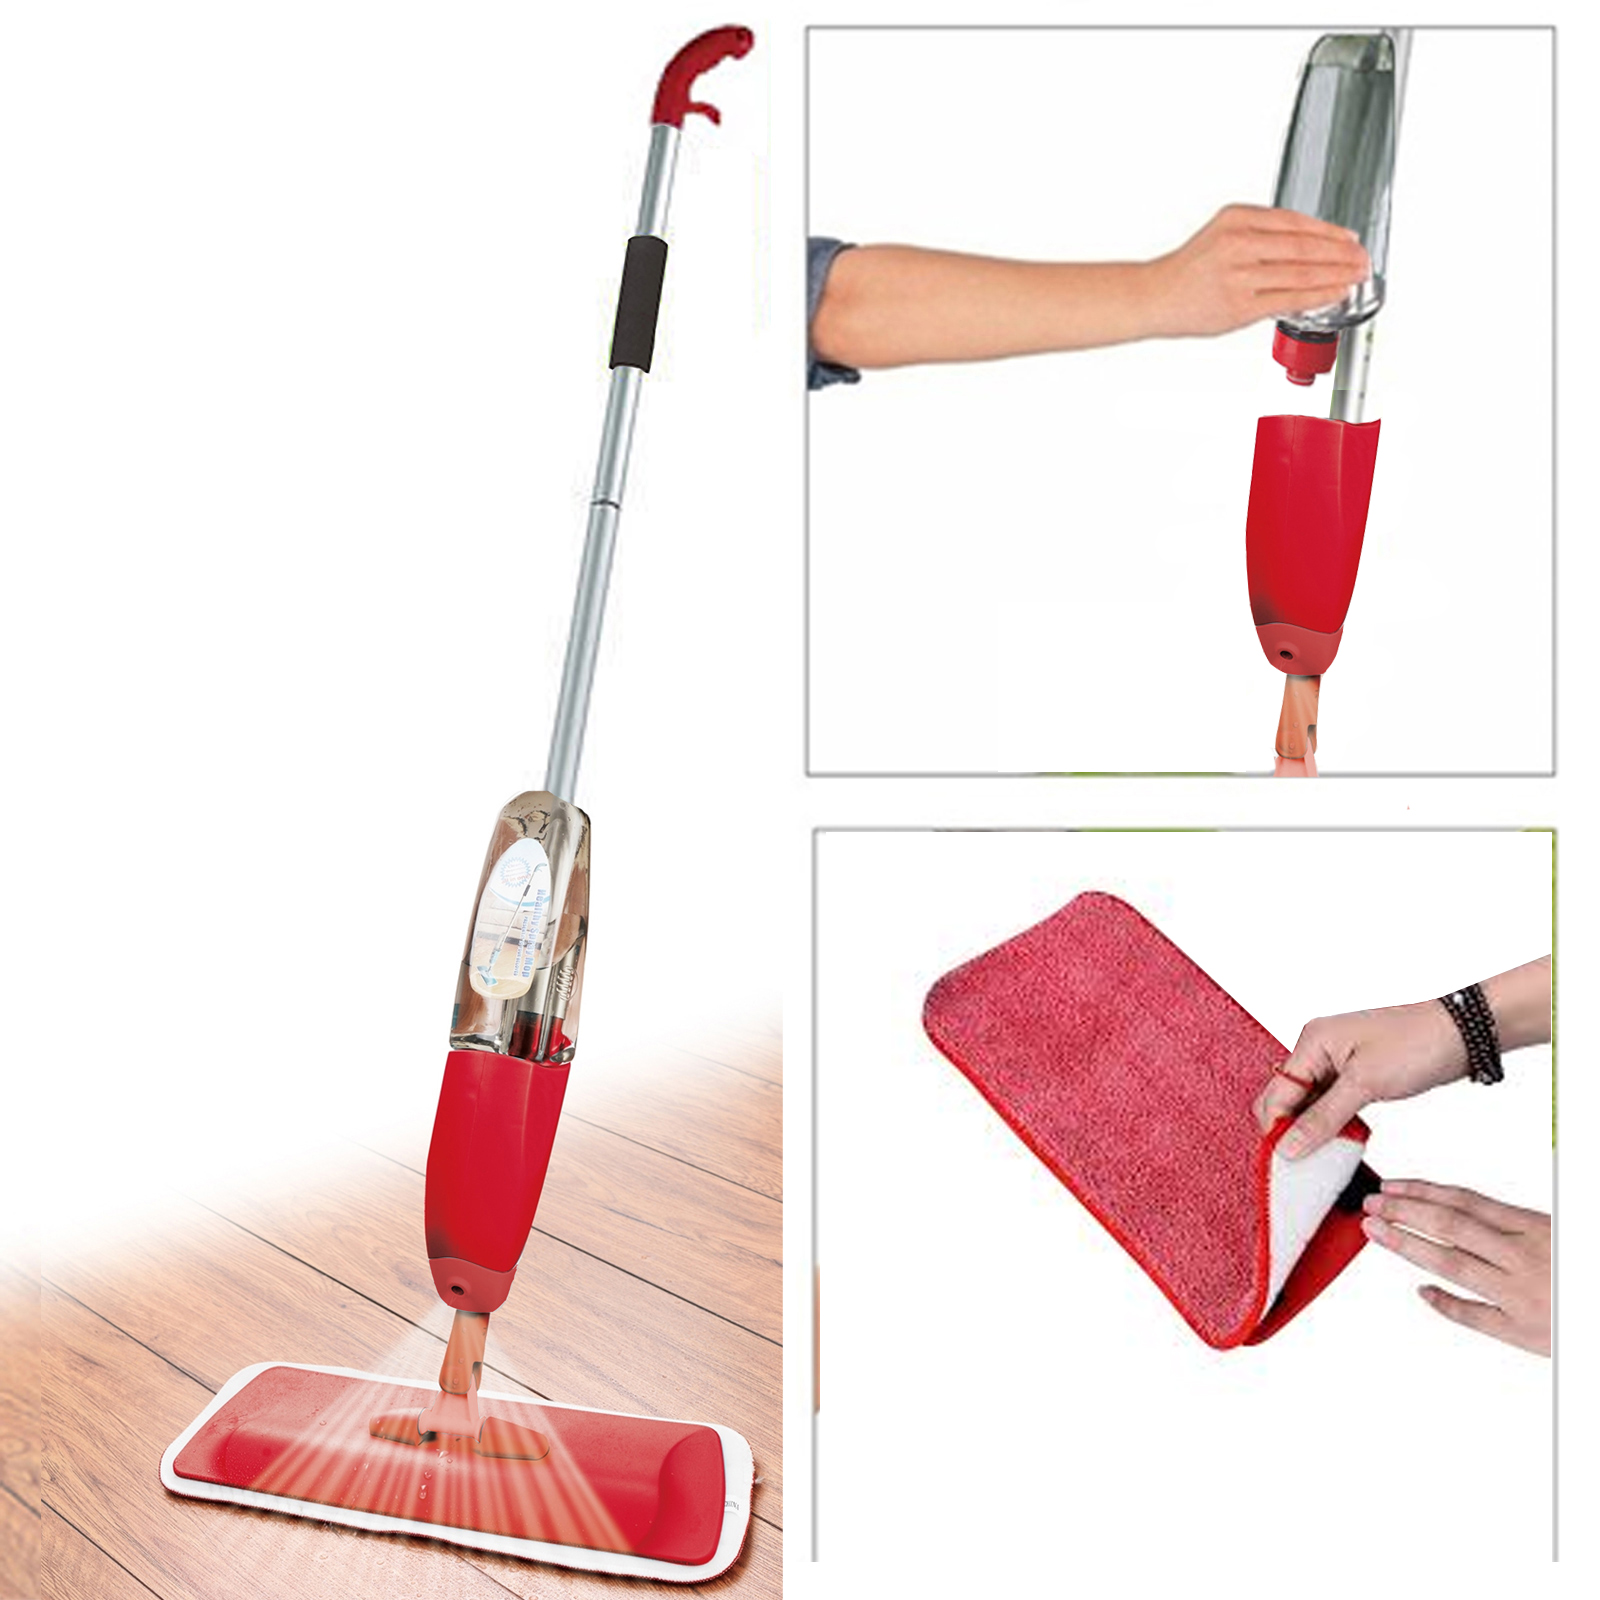 Electric floor cleaners for tiles images home flooring design electric mops for tile floors choice image tile flooring design mops for cleaning tile floors images doublecrazyfo Image collections